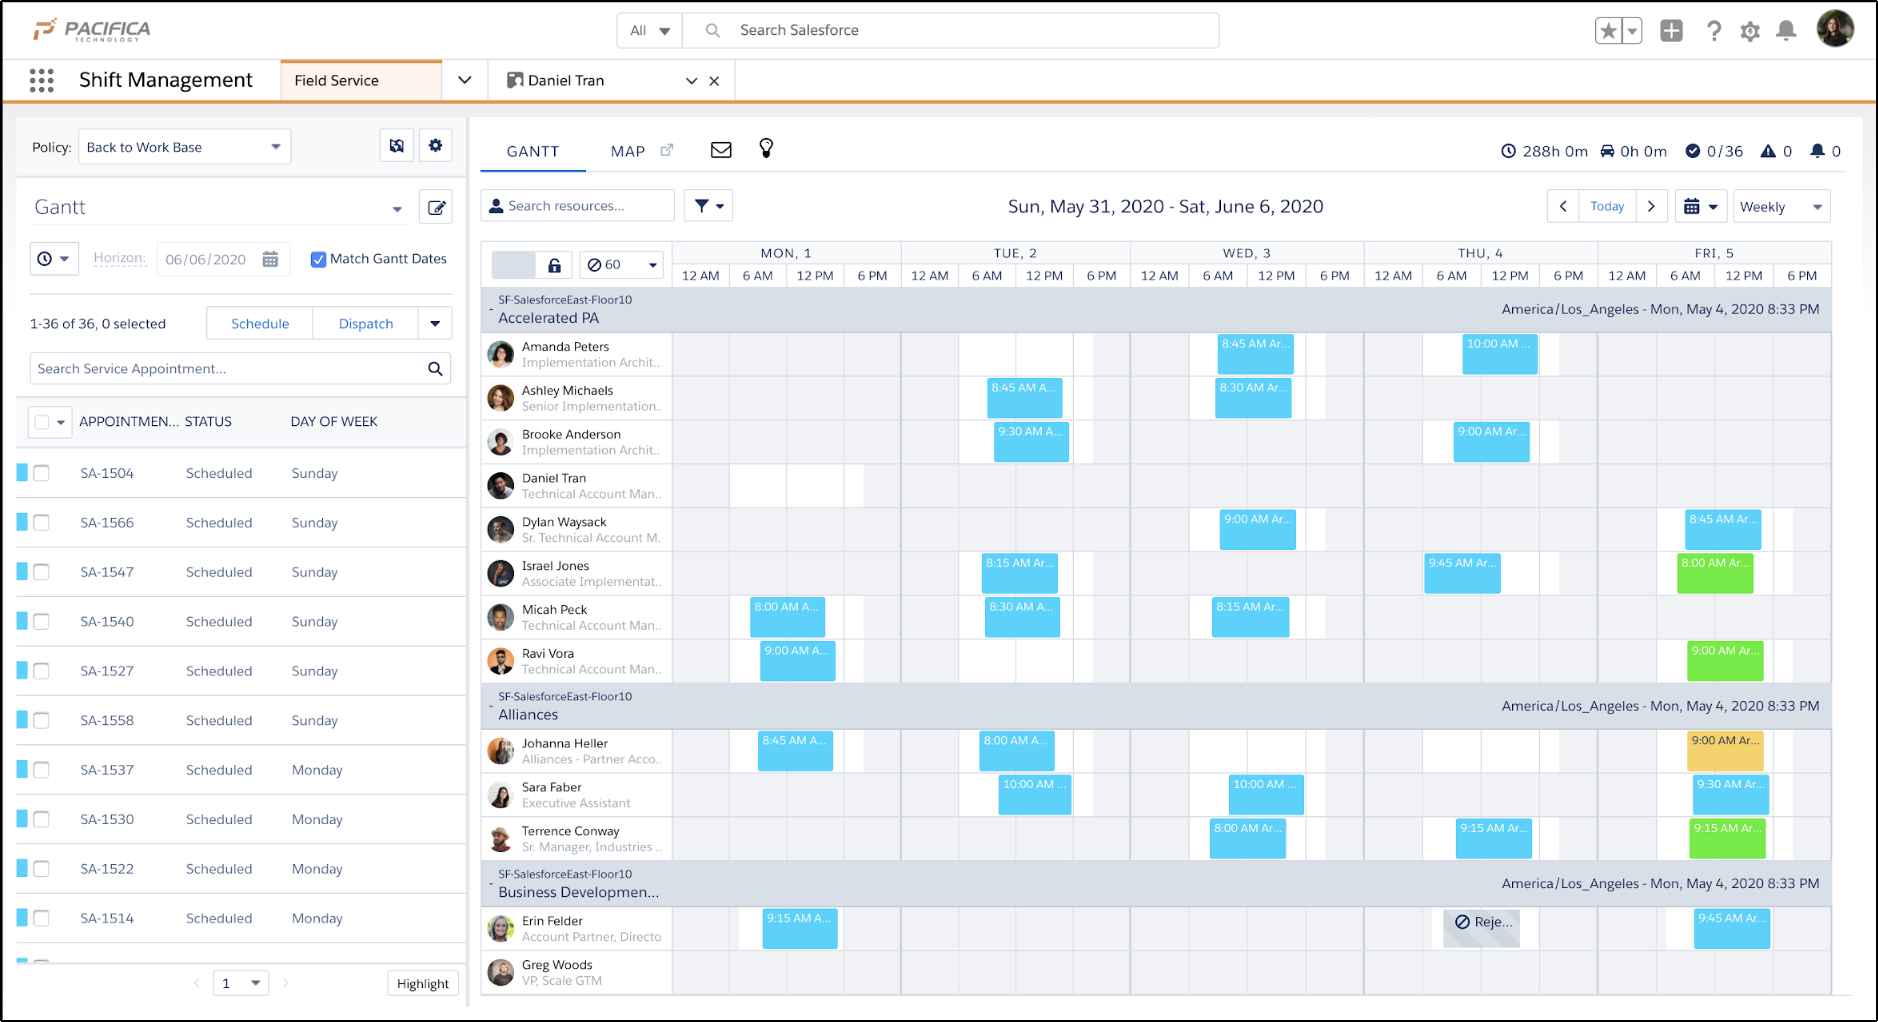 Shift Management Gantt schedule view